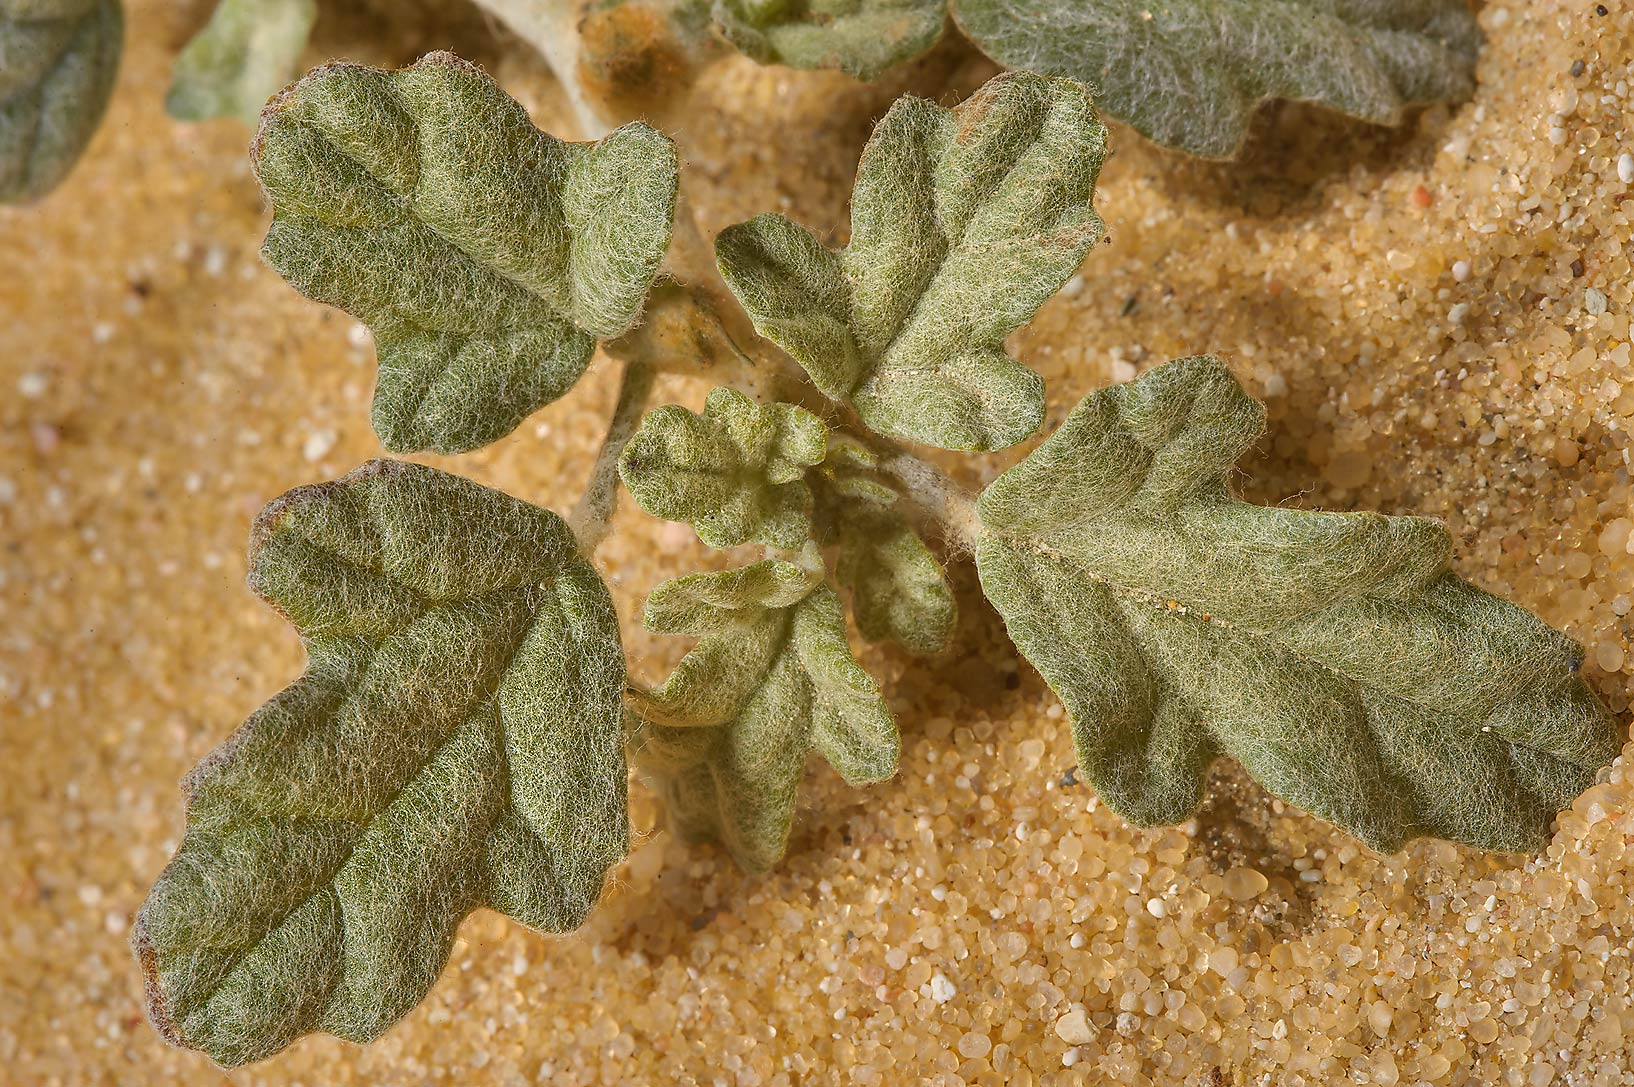 Sand button (creeping thorn rose, Neurada...Jebel Al-Nakhsh in south-western Qatar